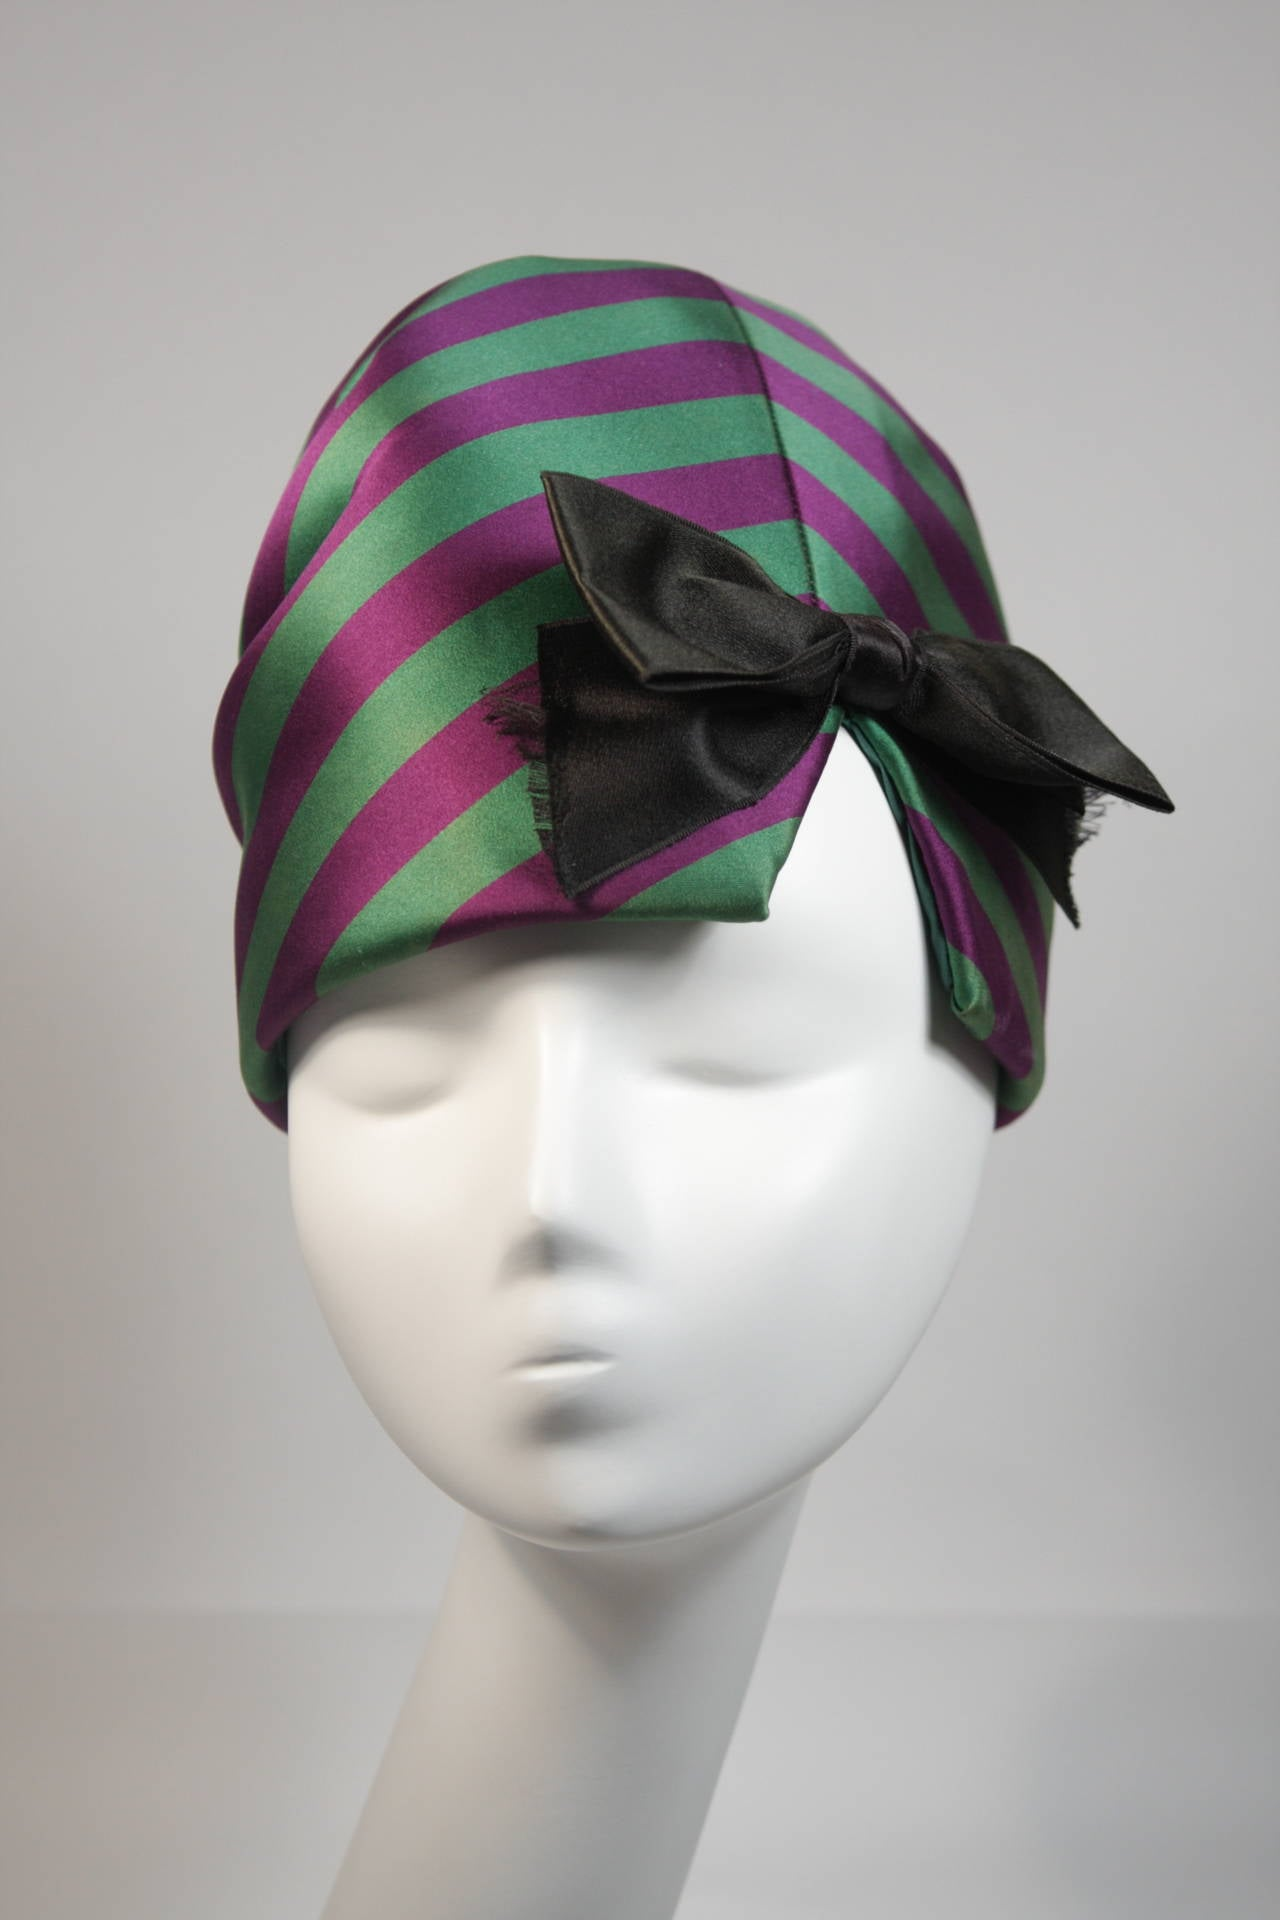 Yves Saint Laurent Rive Gauche Purple and Green Silk Rouched Hat with Bow 3